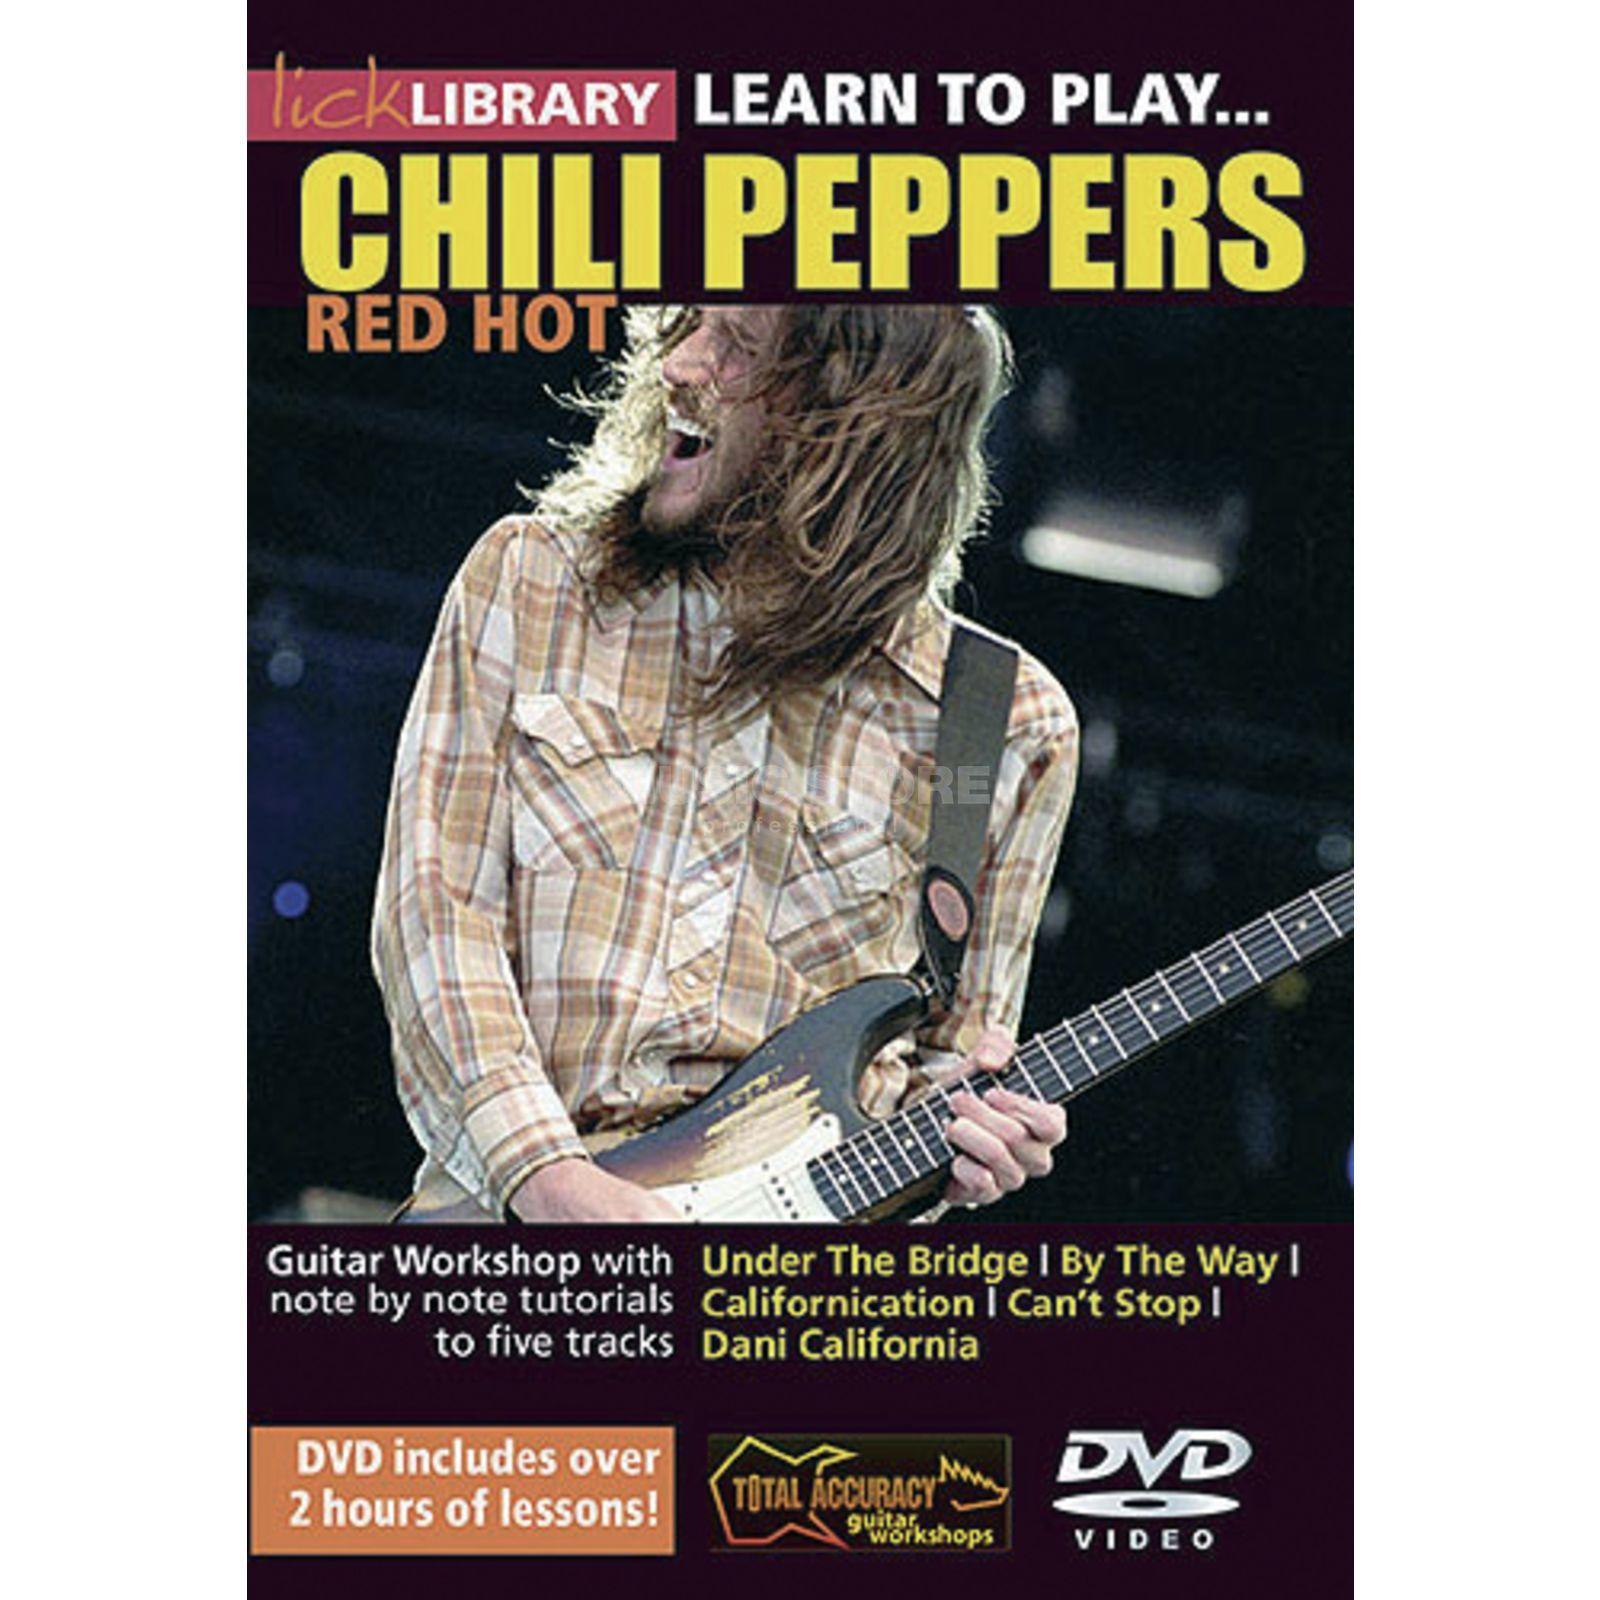 Roadrock International Lick Library: Learn To Play Red Hot Chili Peppers DVD Produktbillede